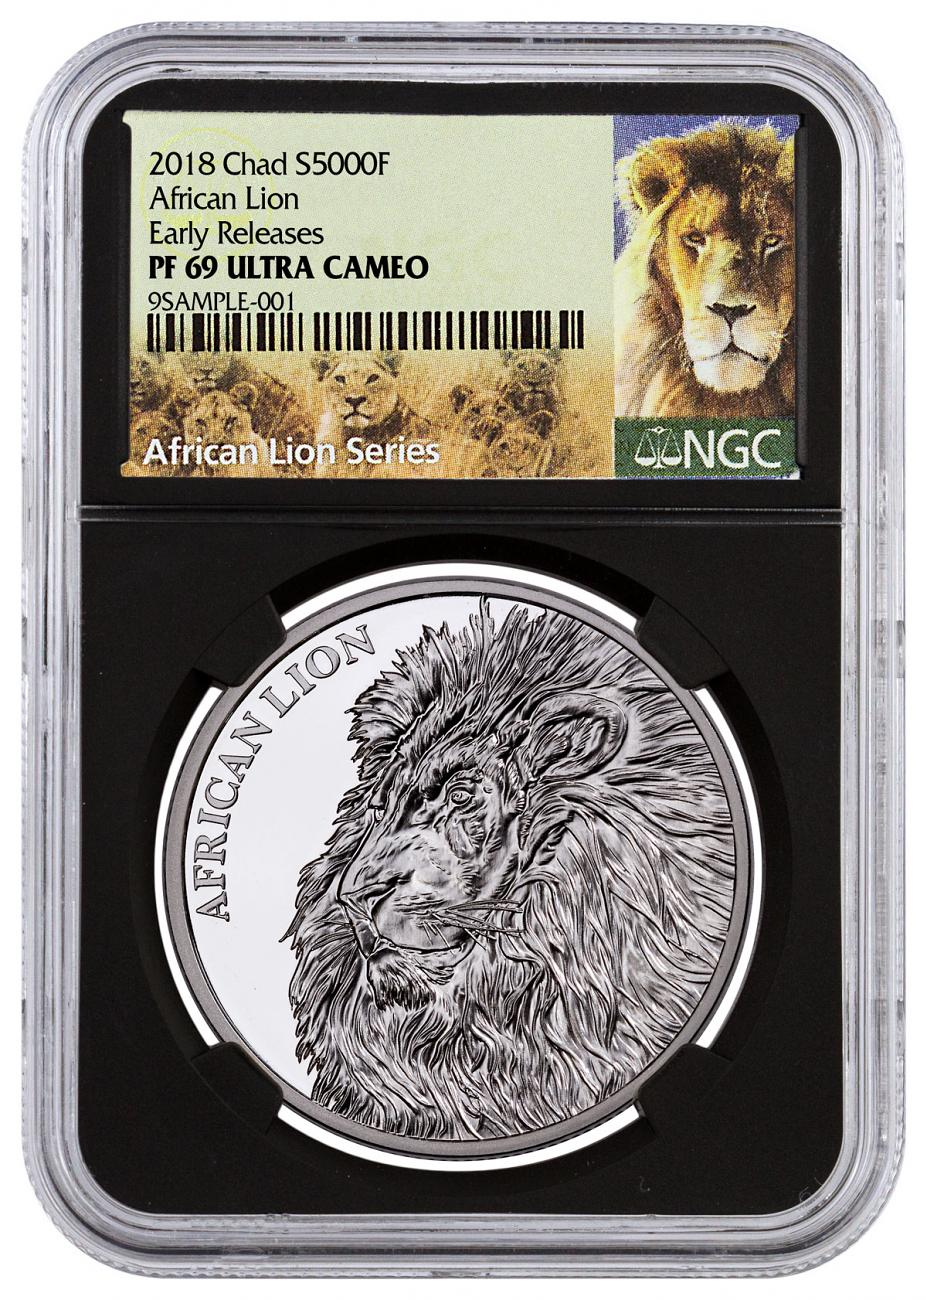 2018 Republic of Chad African Lion 1 oz Silver Proof Fr5,000 Coin NGC PF69 UC ER Black Core Holder Exclusive Lion Label